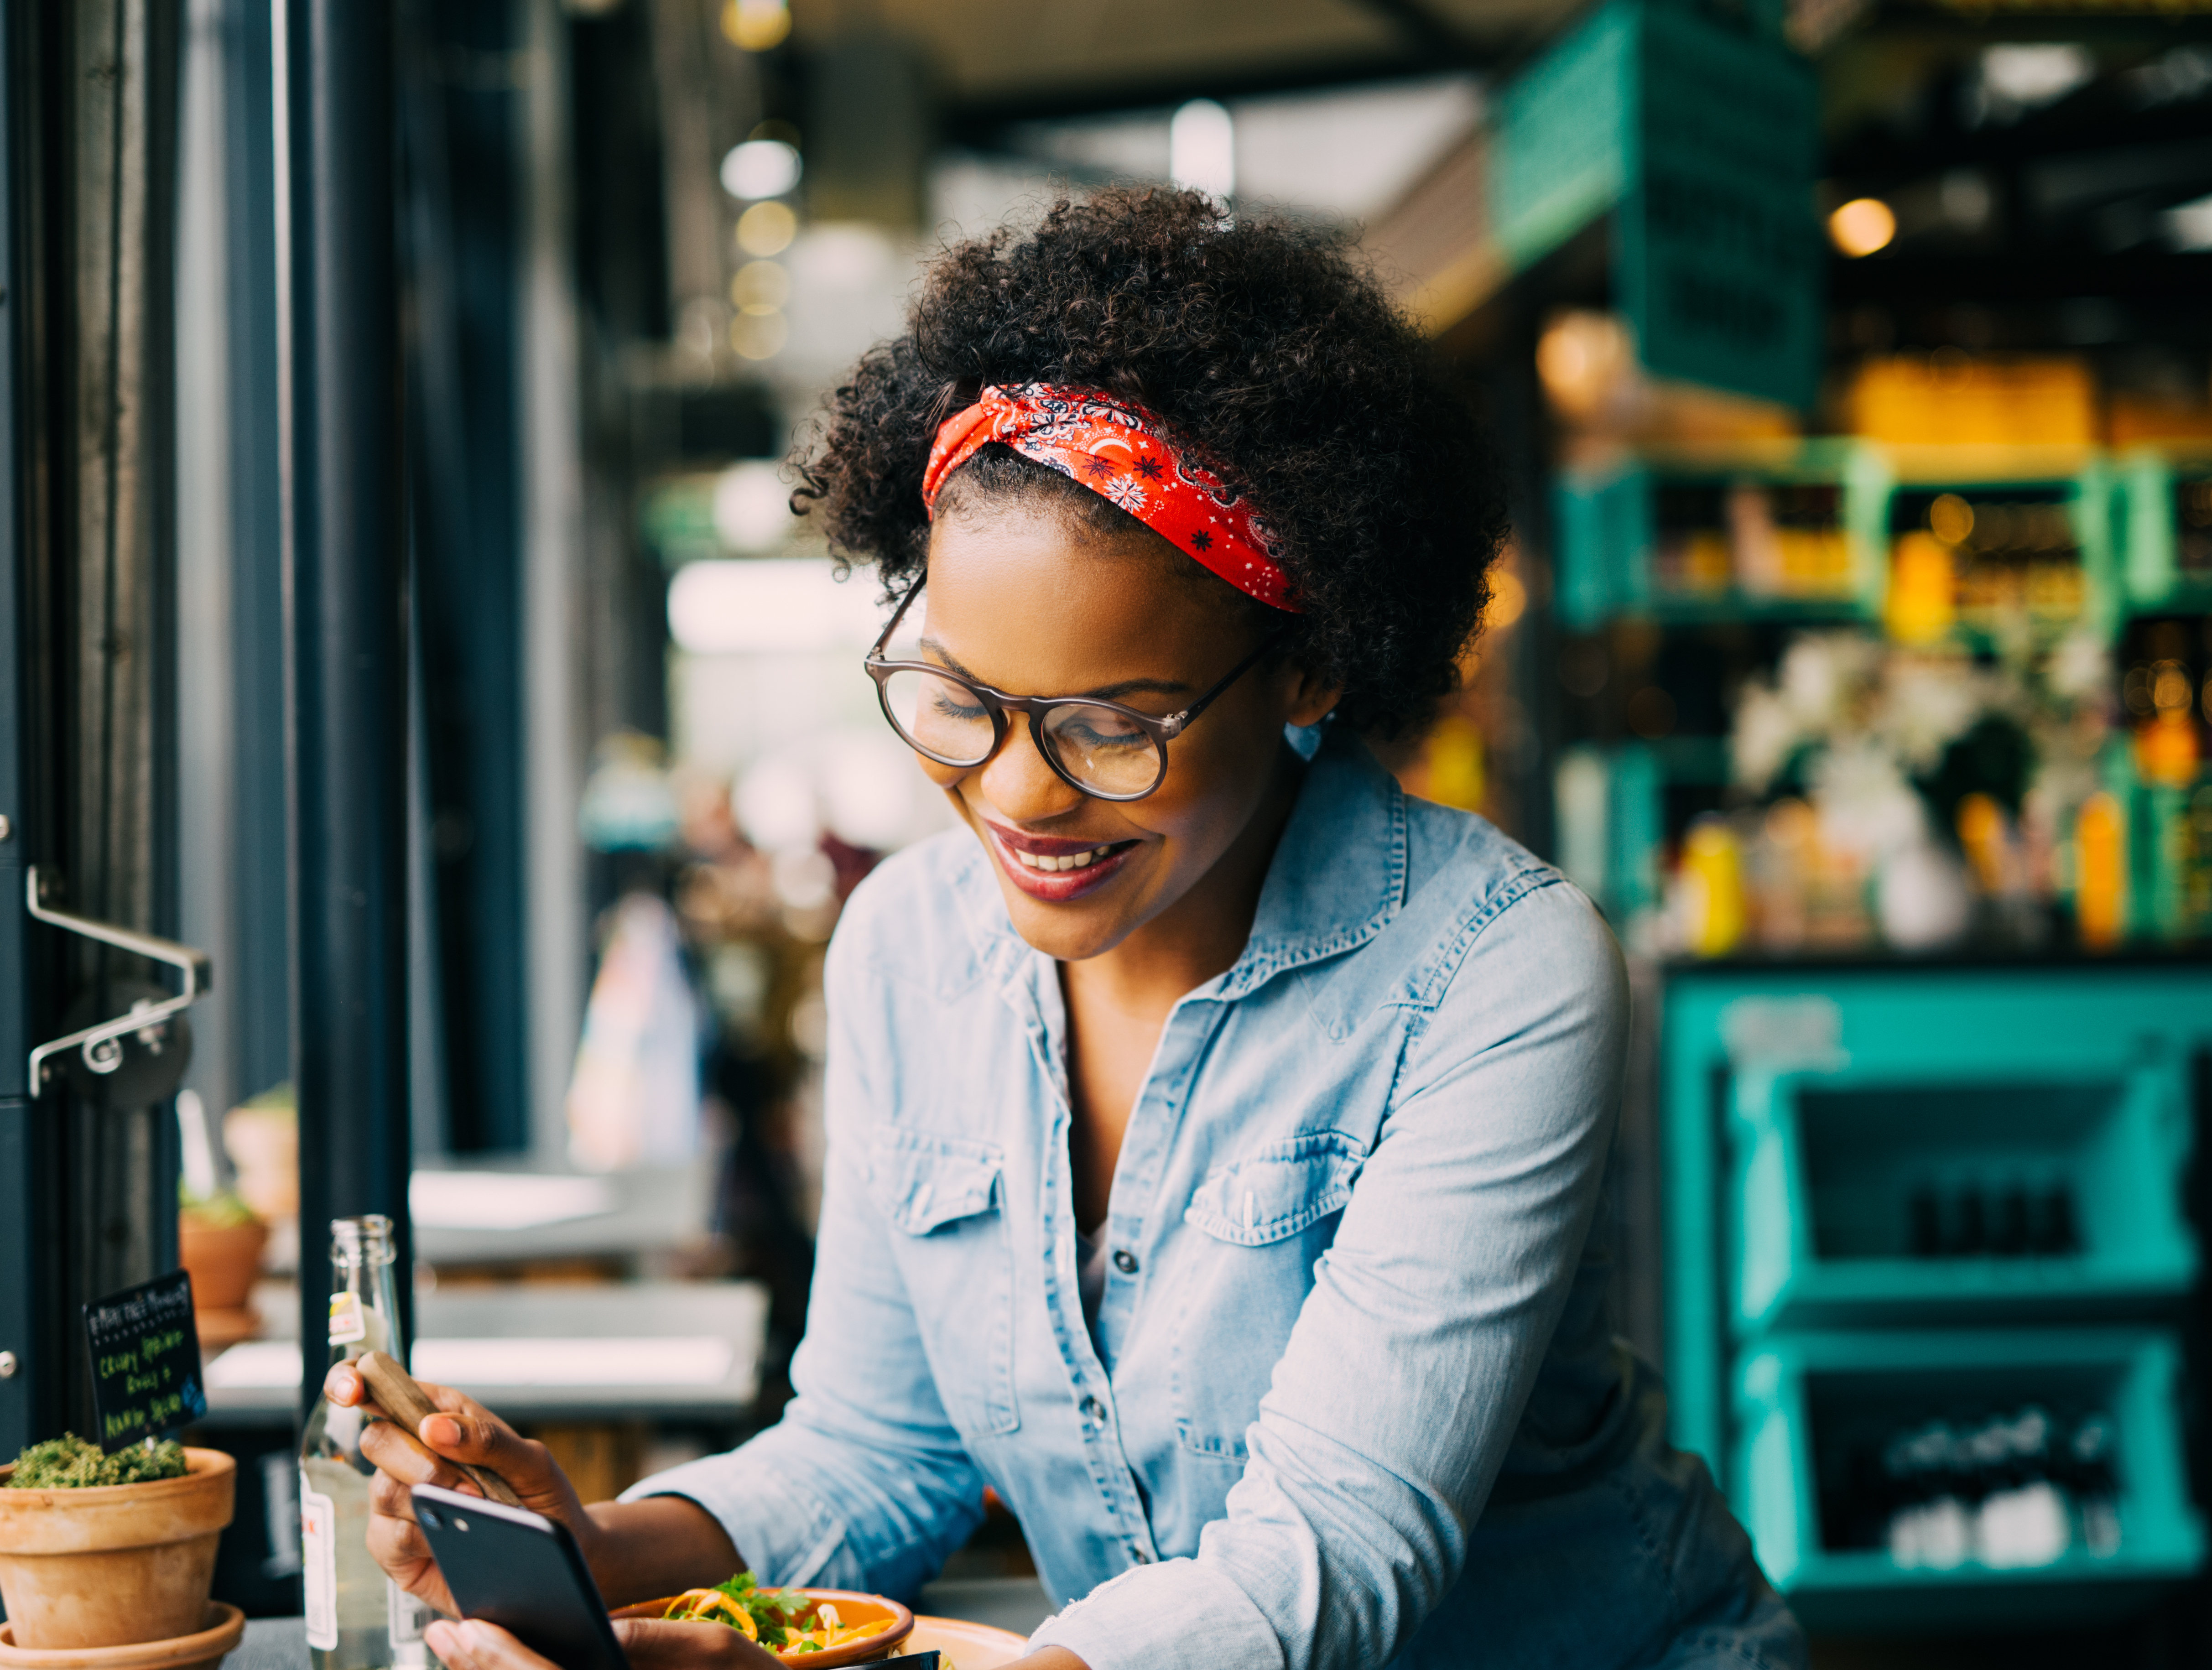 Smiling young African woman reading texts on a cellphone while sitting alone at a counter in a cafe